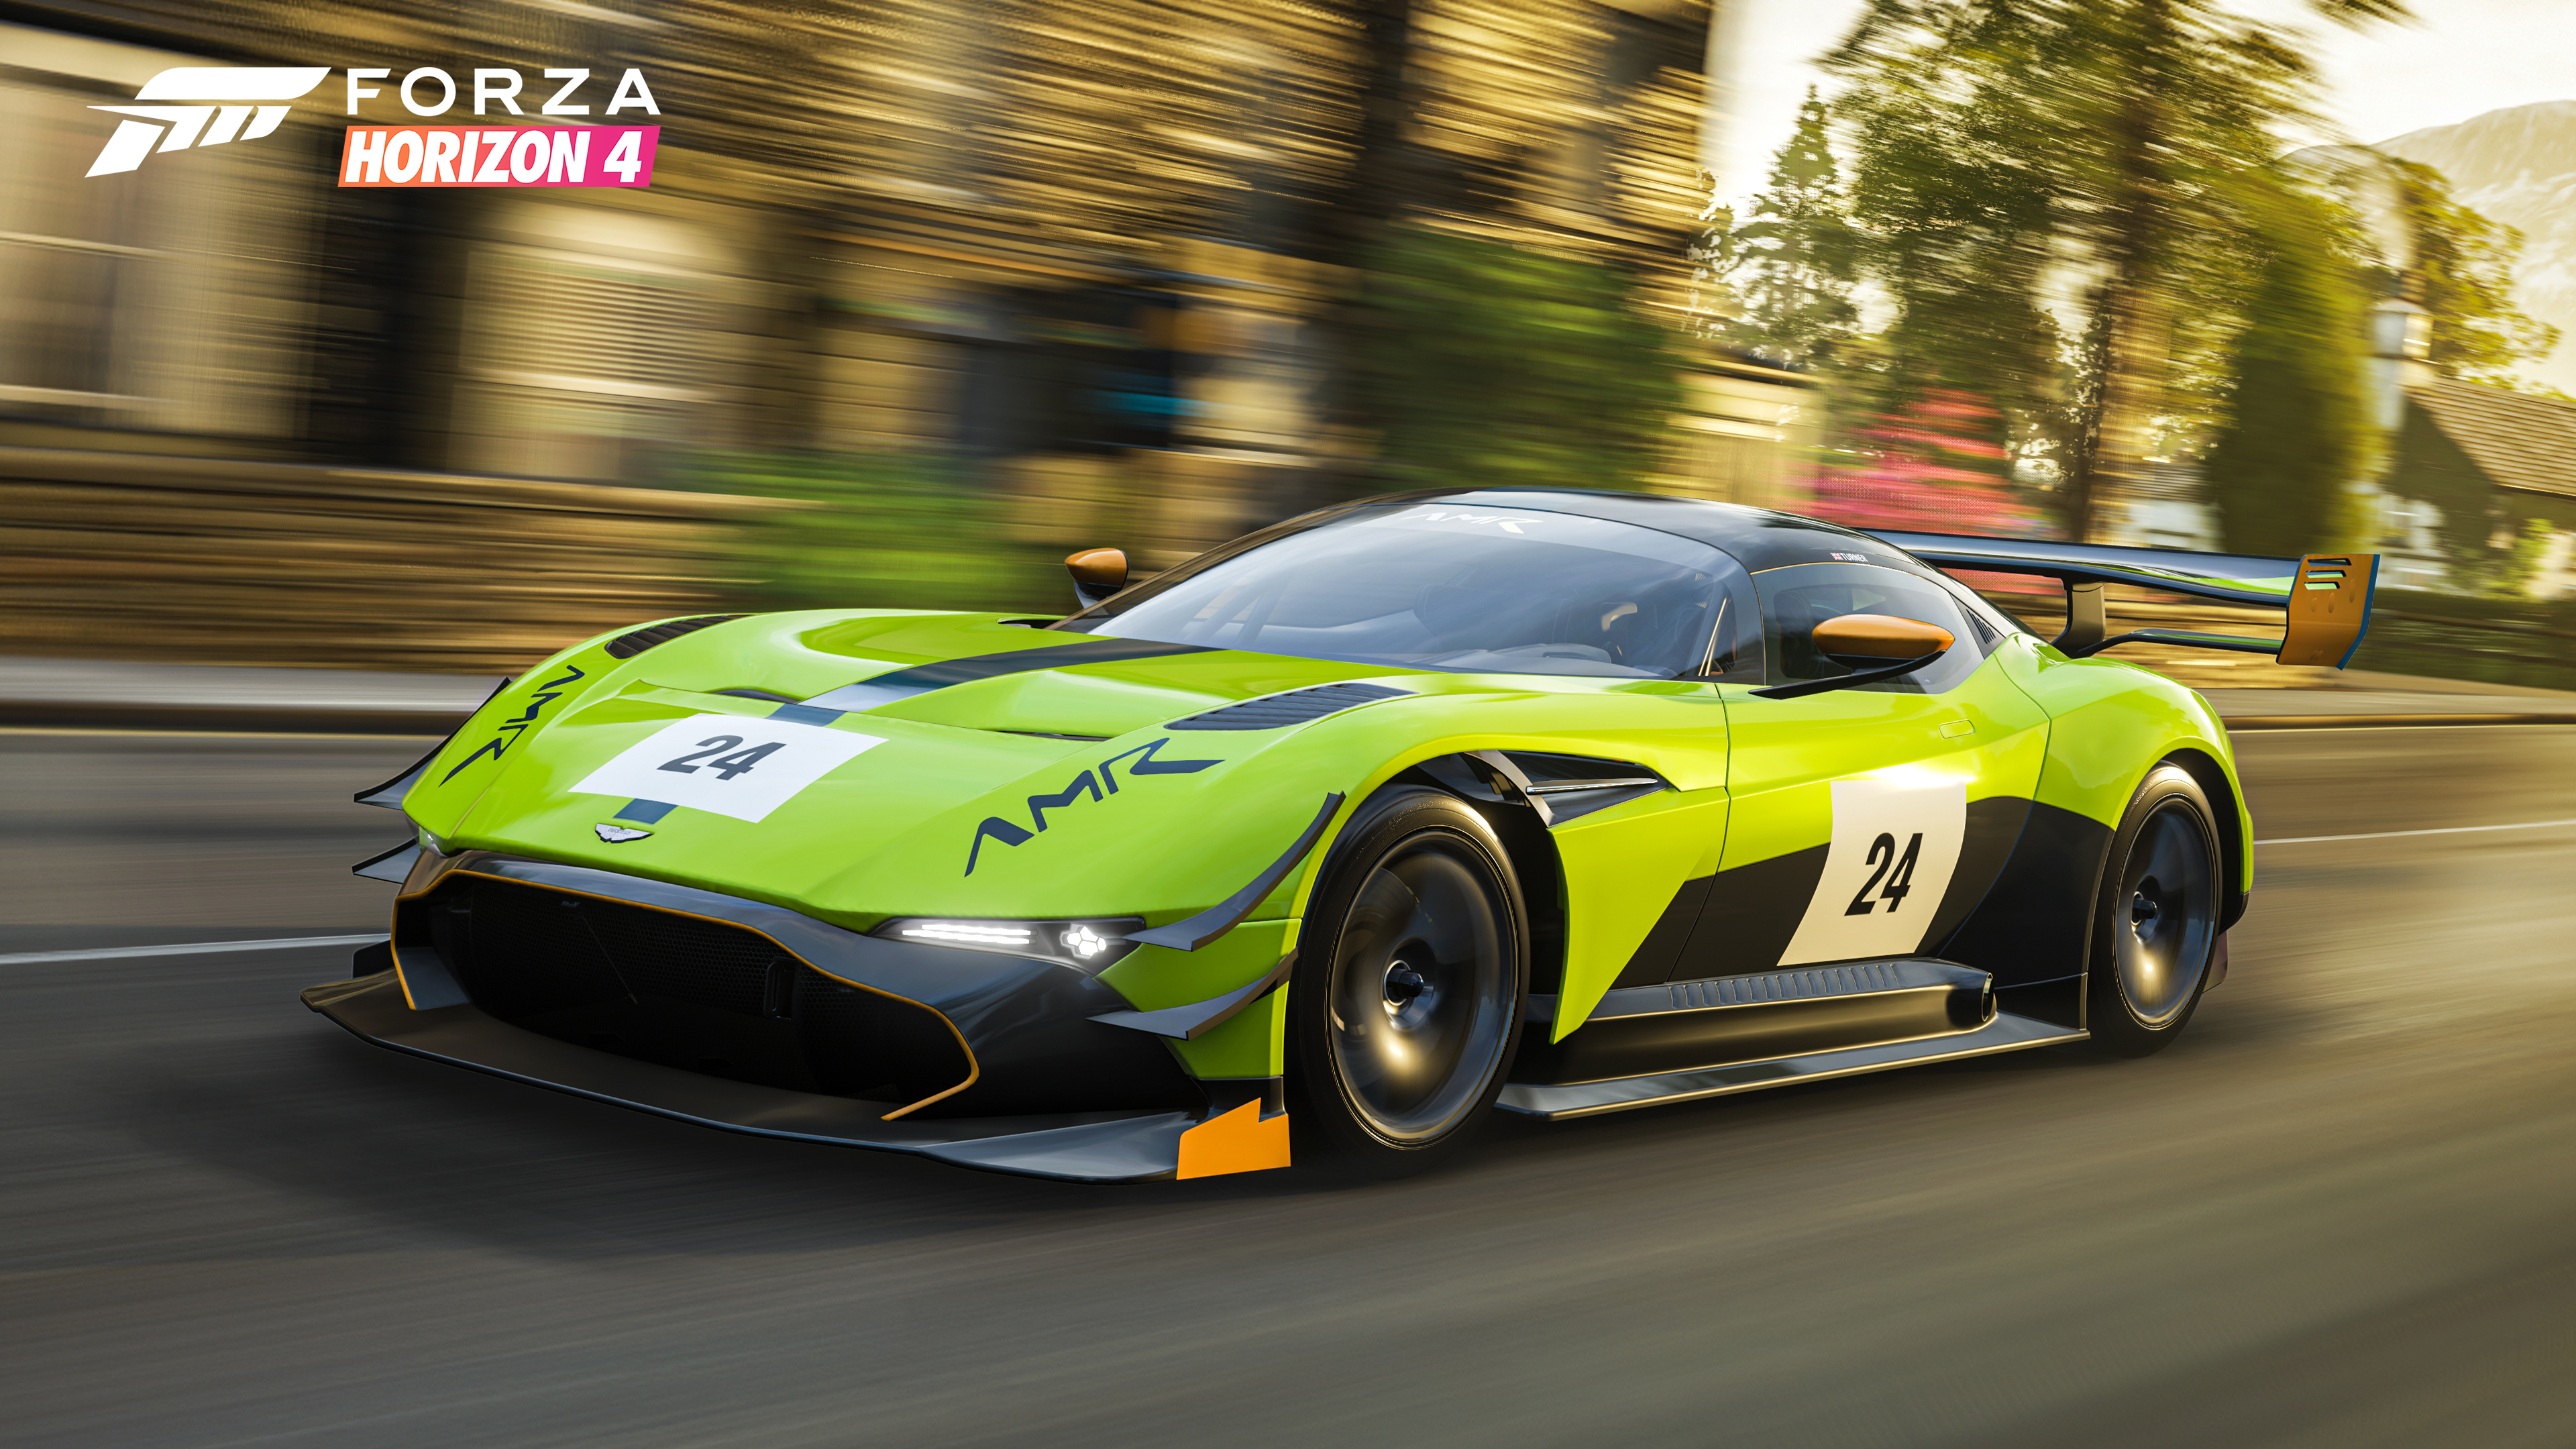 Forza Horizon 4/Update 19